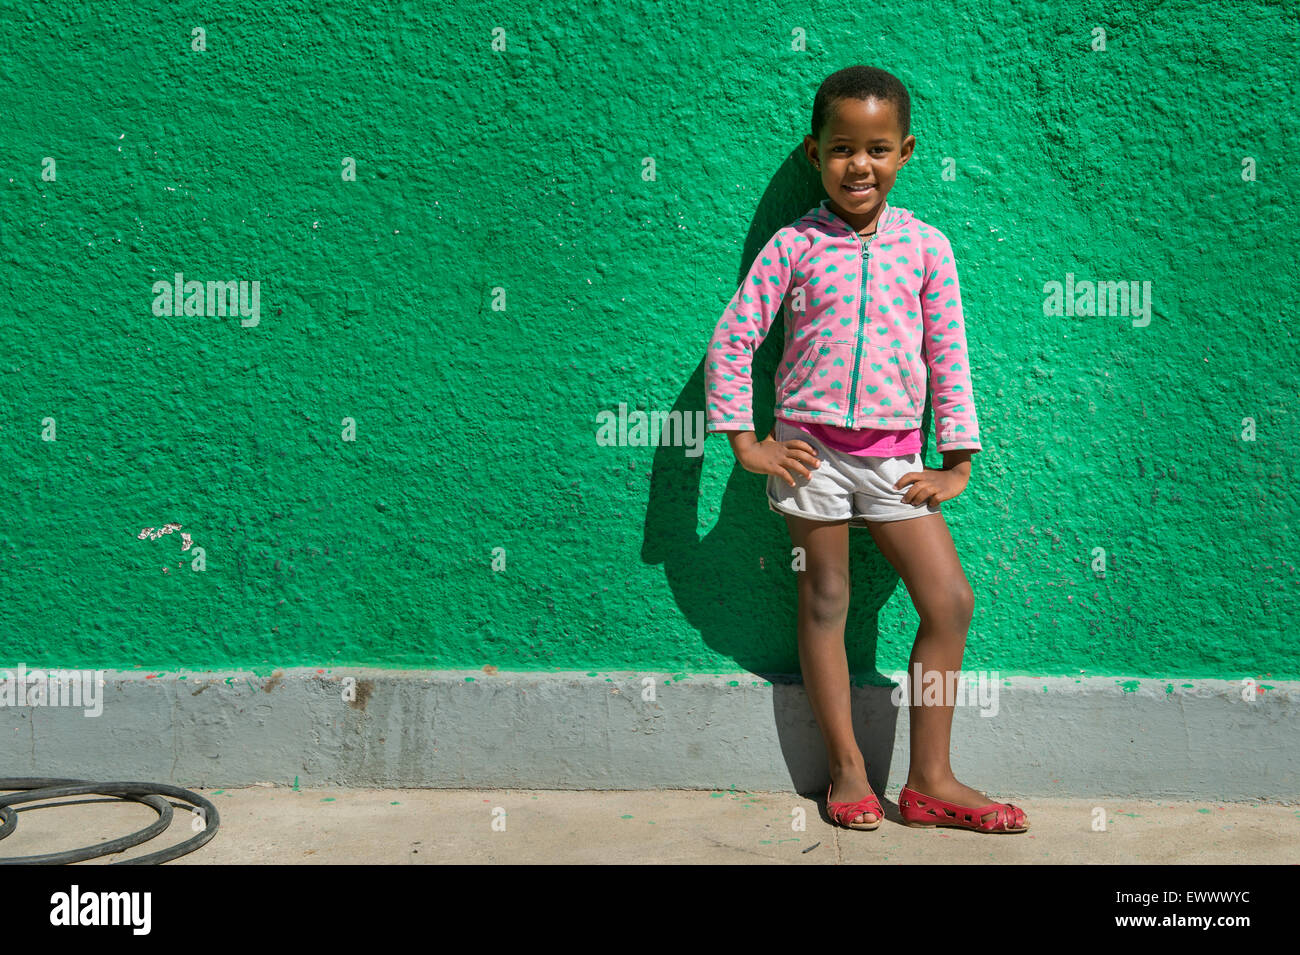 Namibie - Young African Girl standing in front of Bright Green wall. Photo Stock